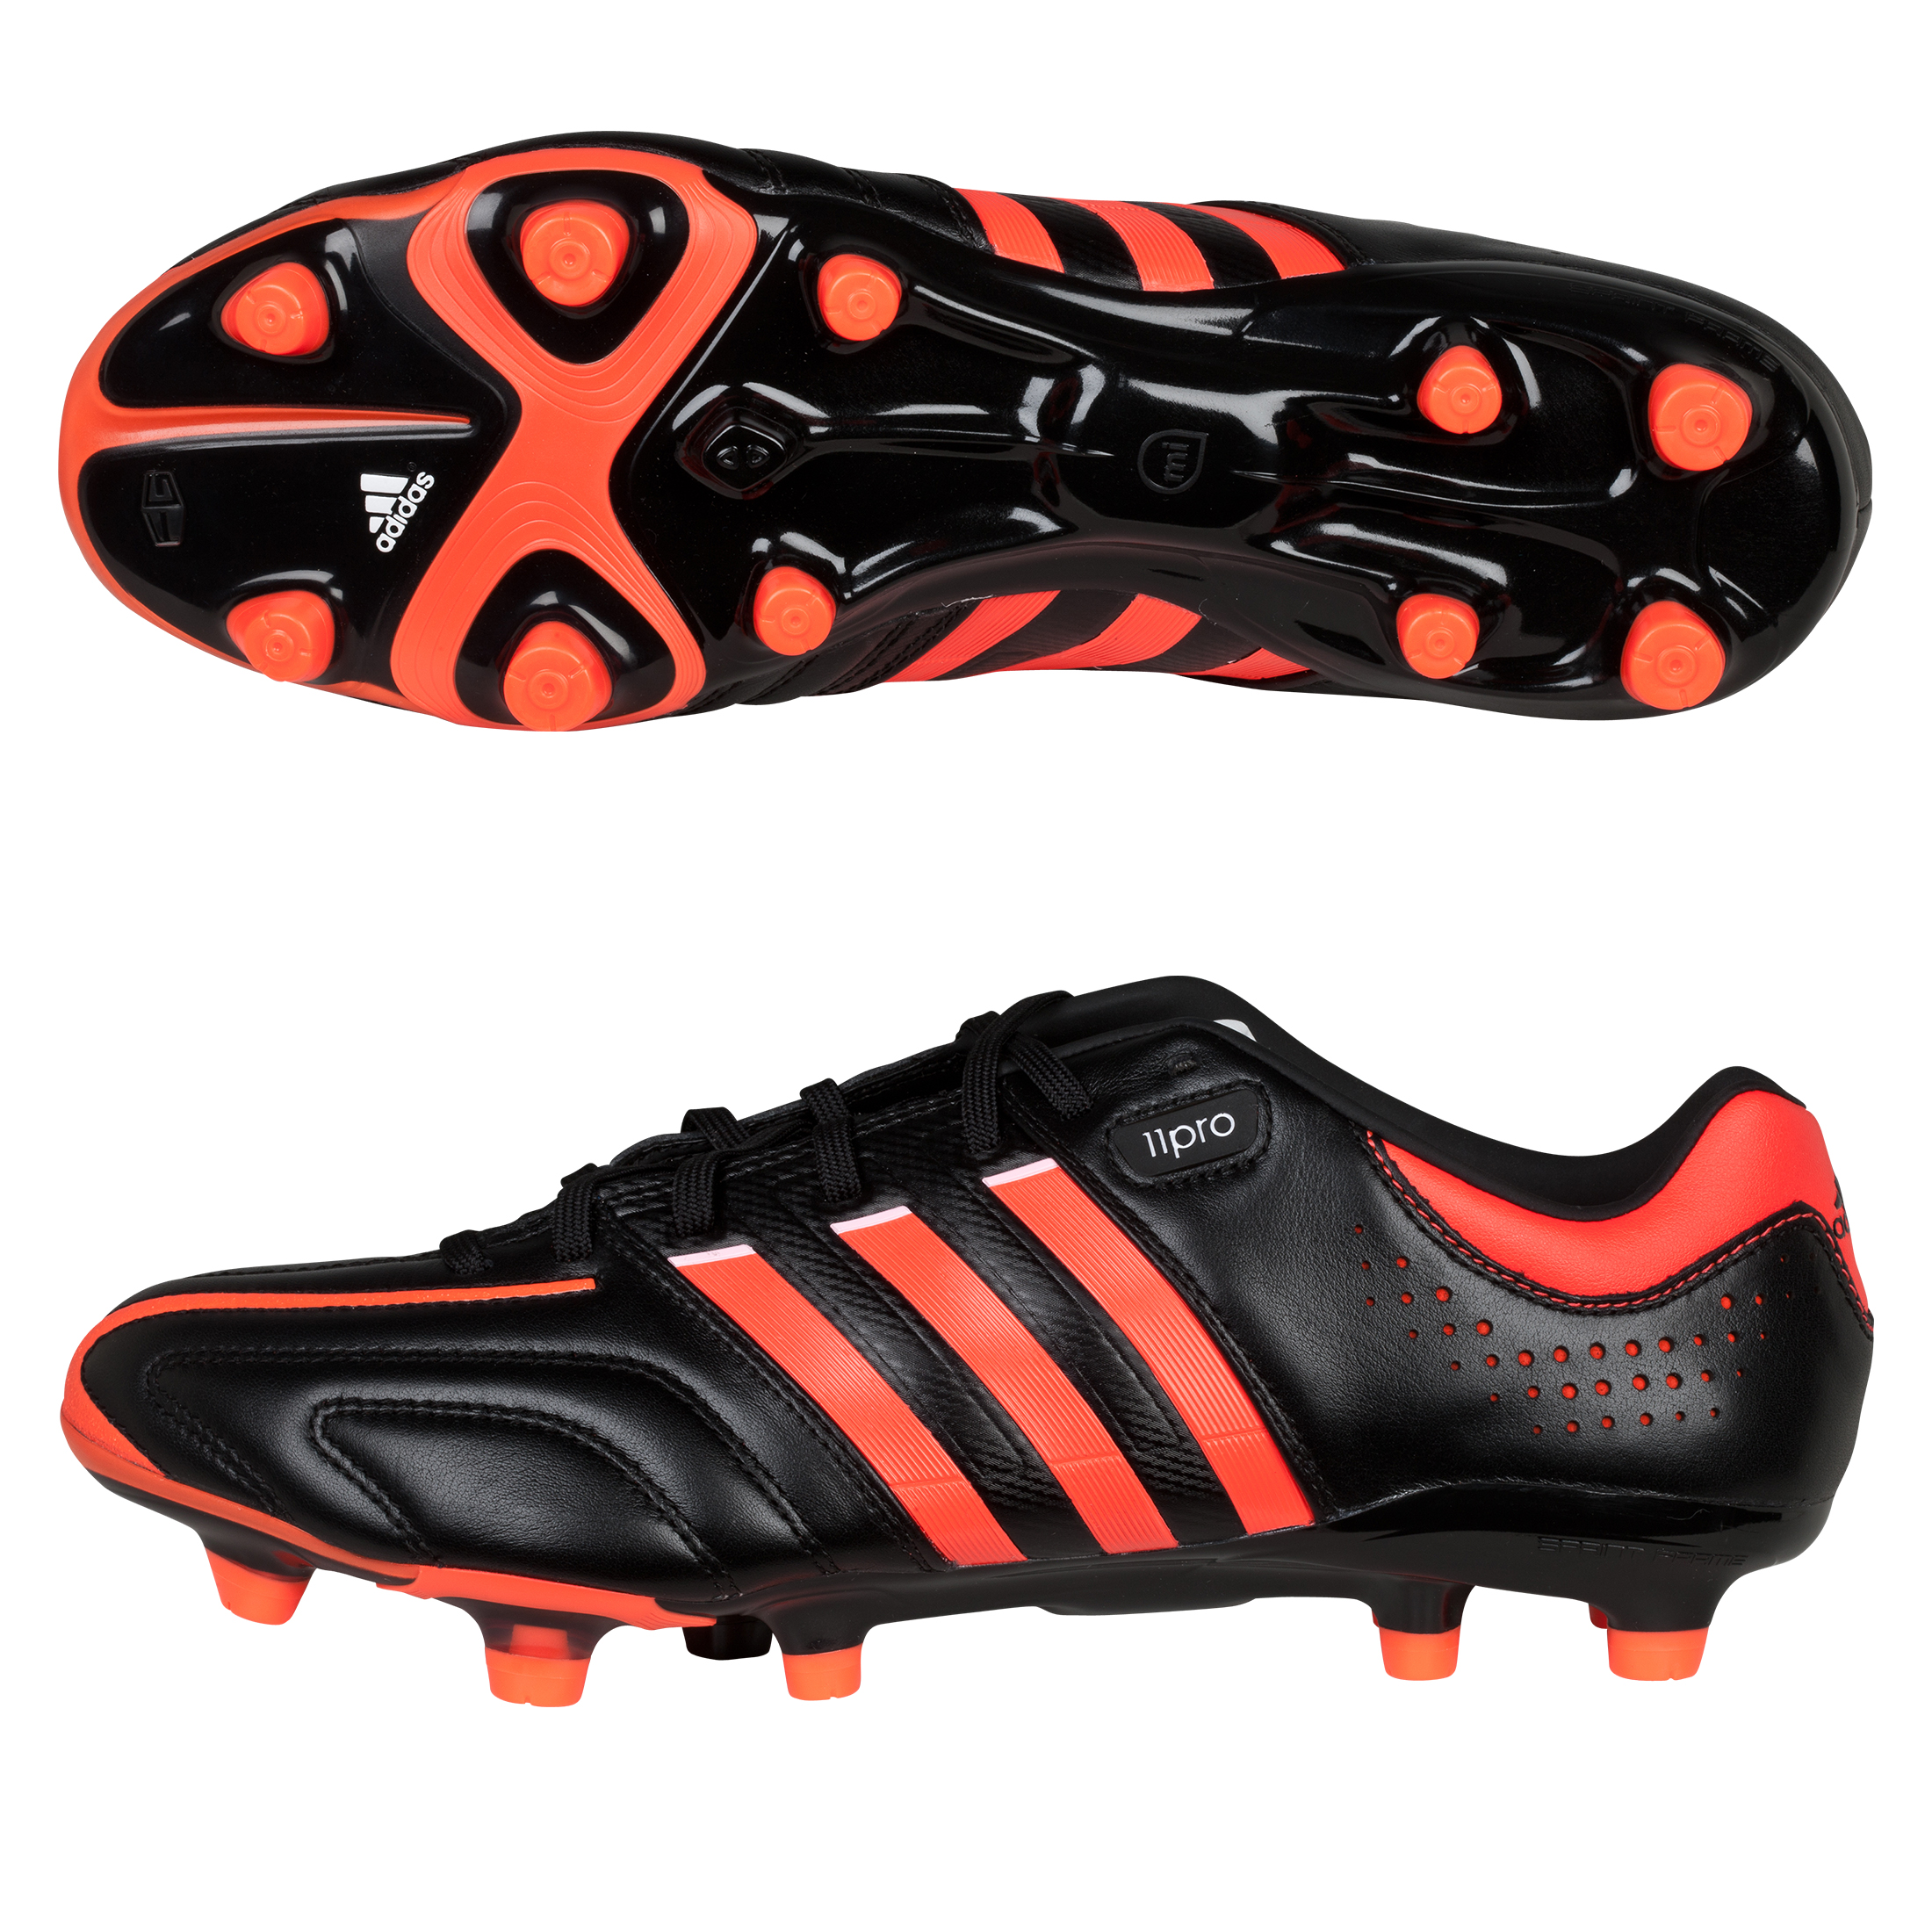 Adidas Adipure 11Pro TRX Football Boots - Black/Infrared/Running White